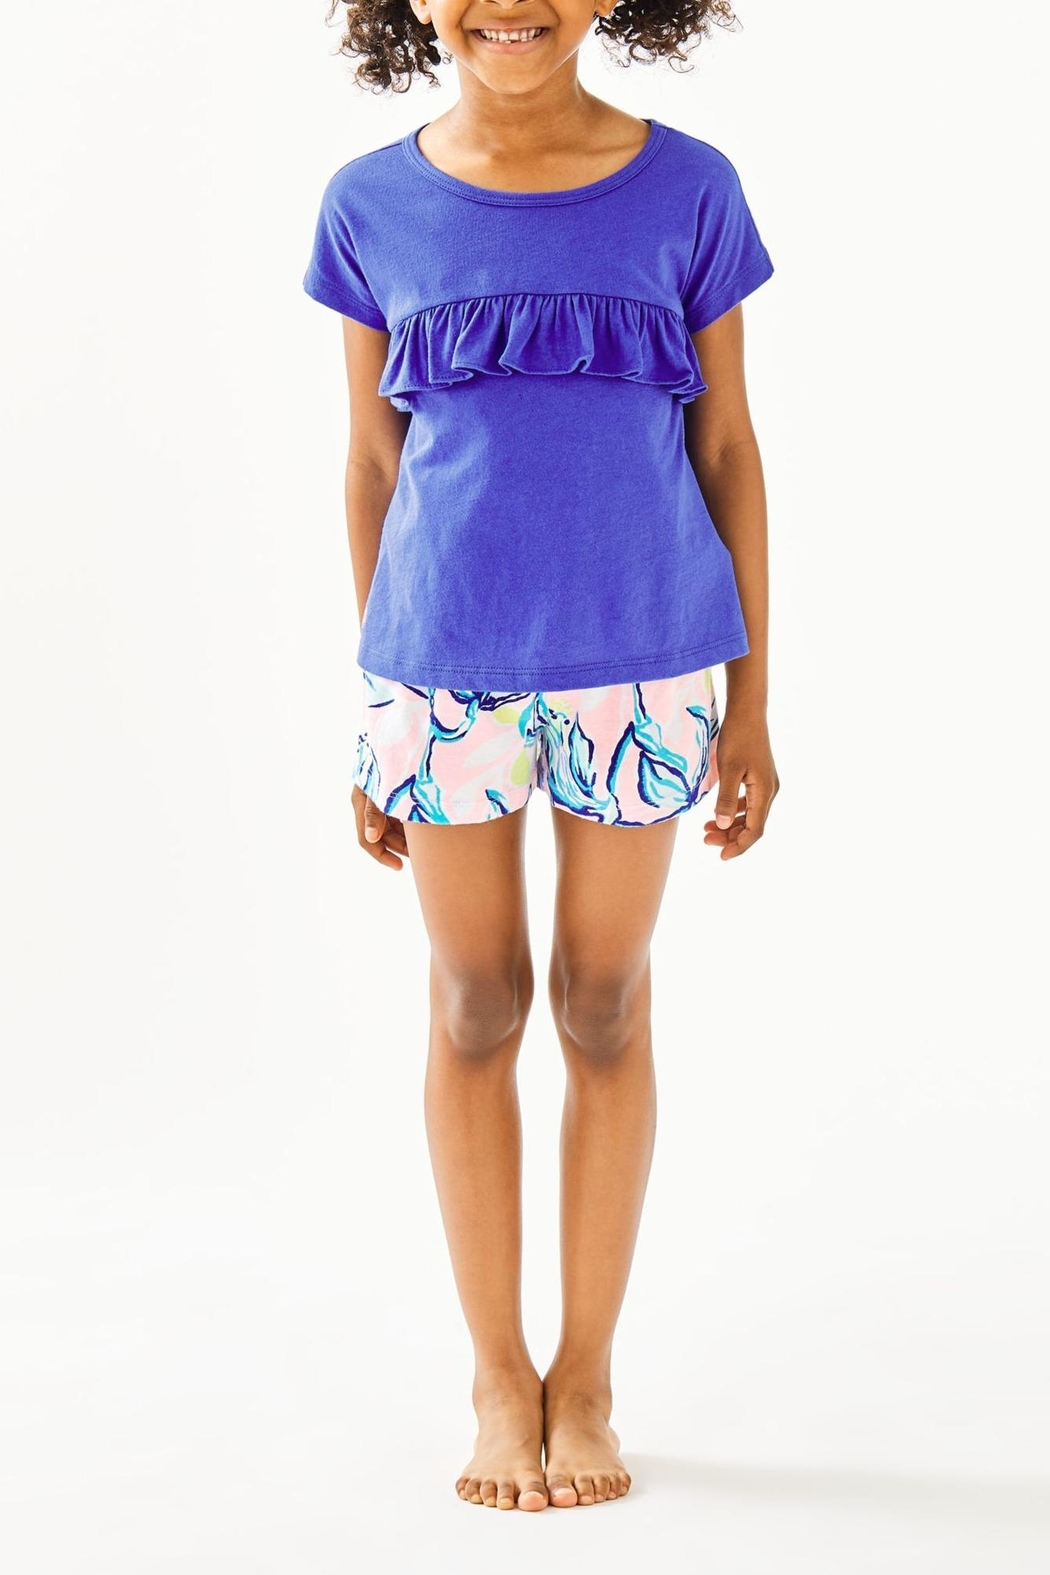 Lilly Pulitzer Girls Petal Top - Front Cropped Image